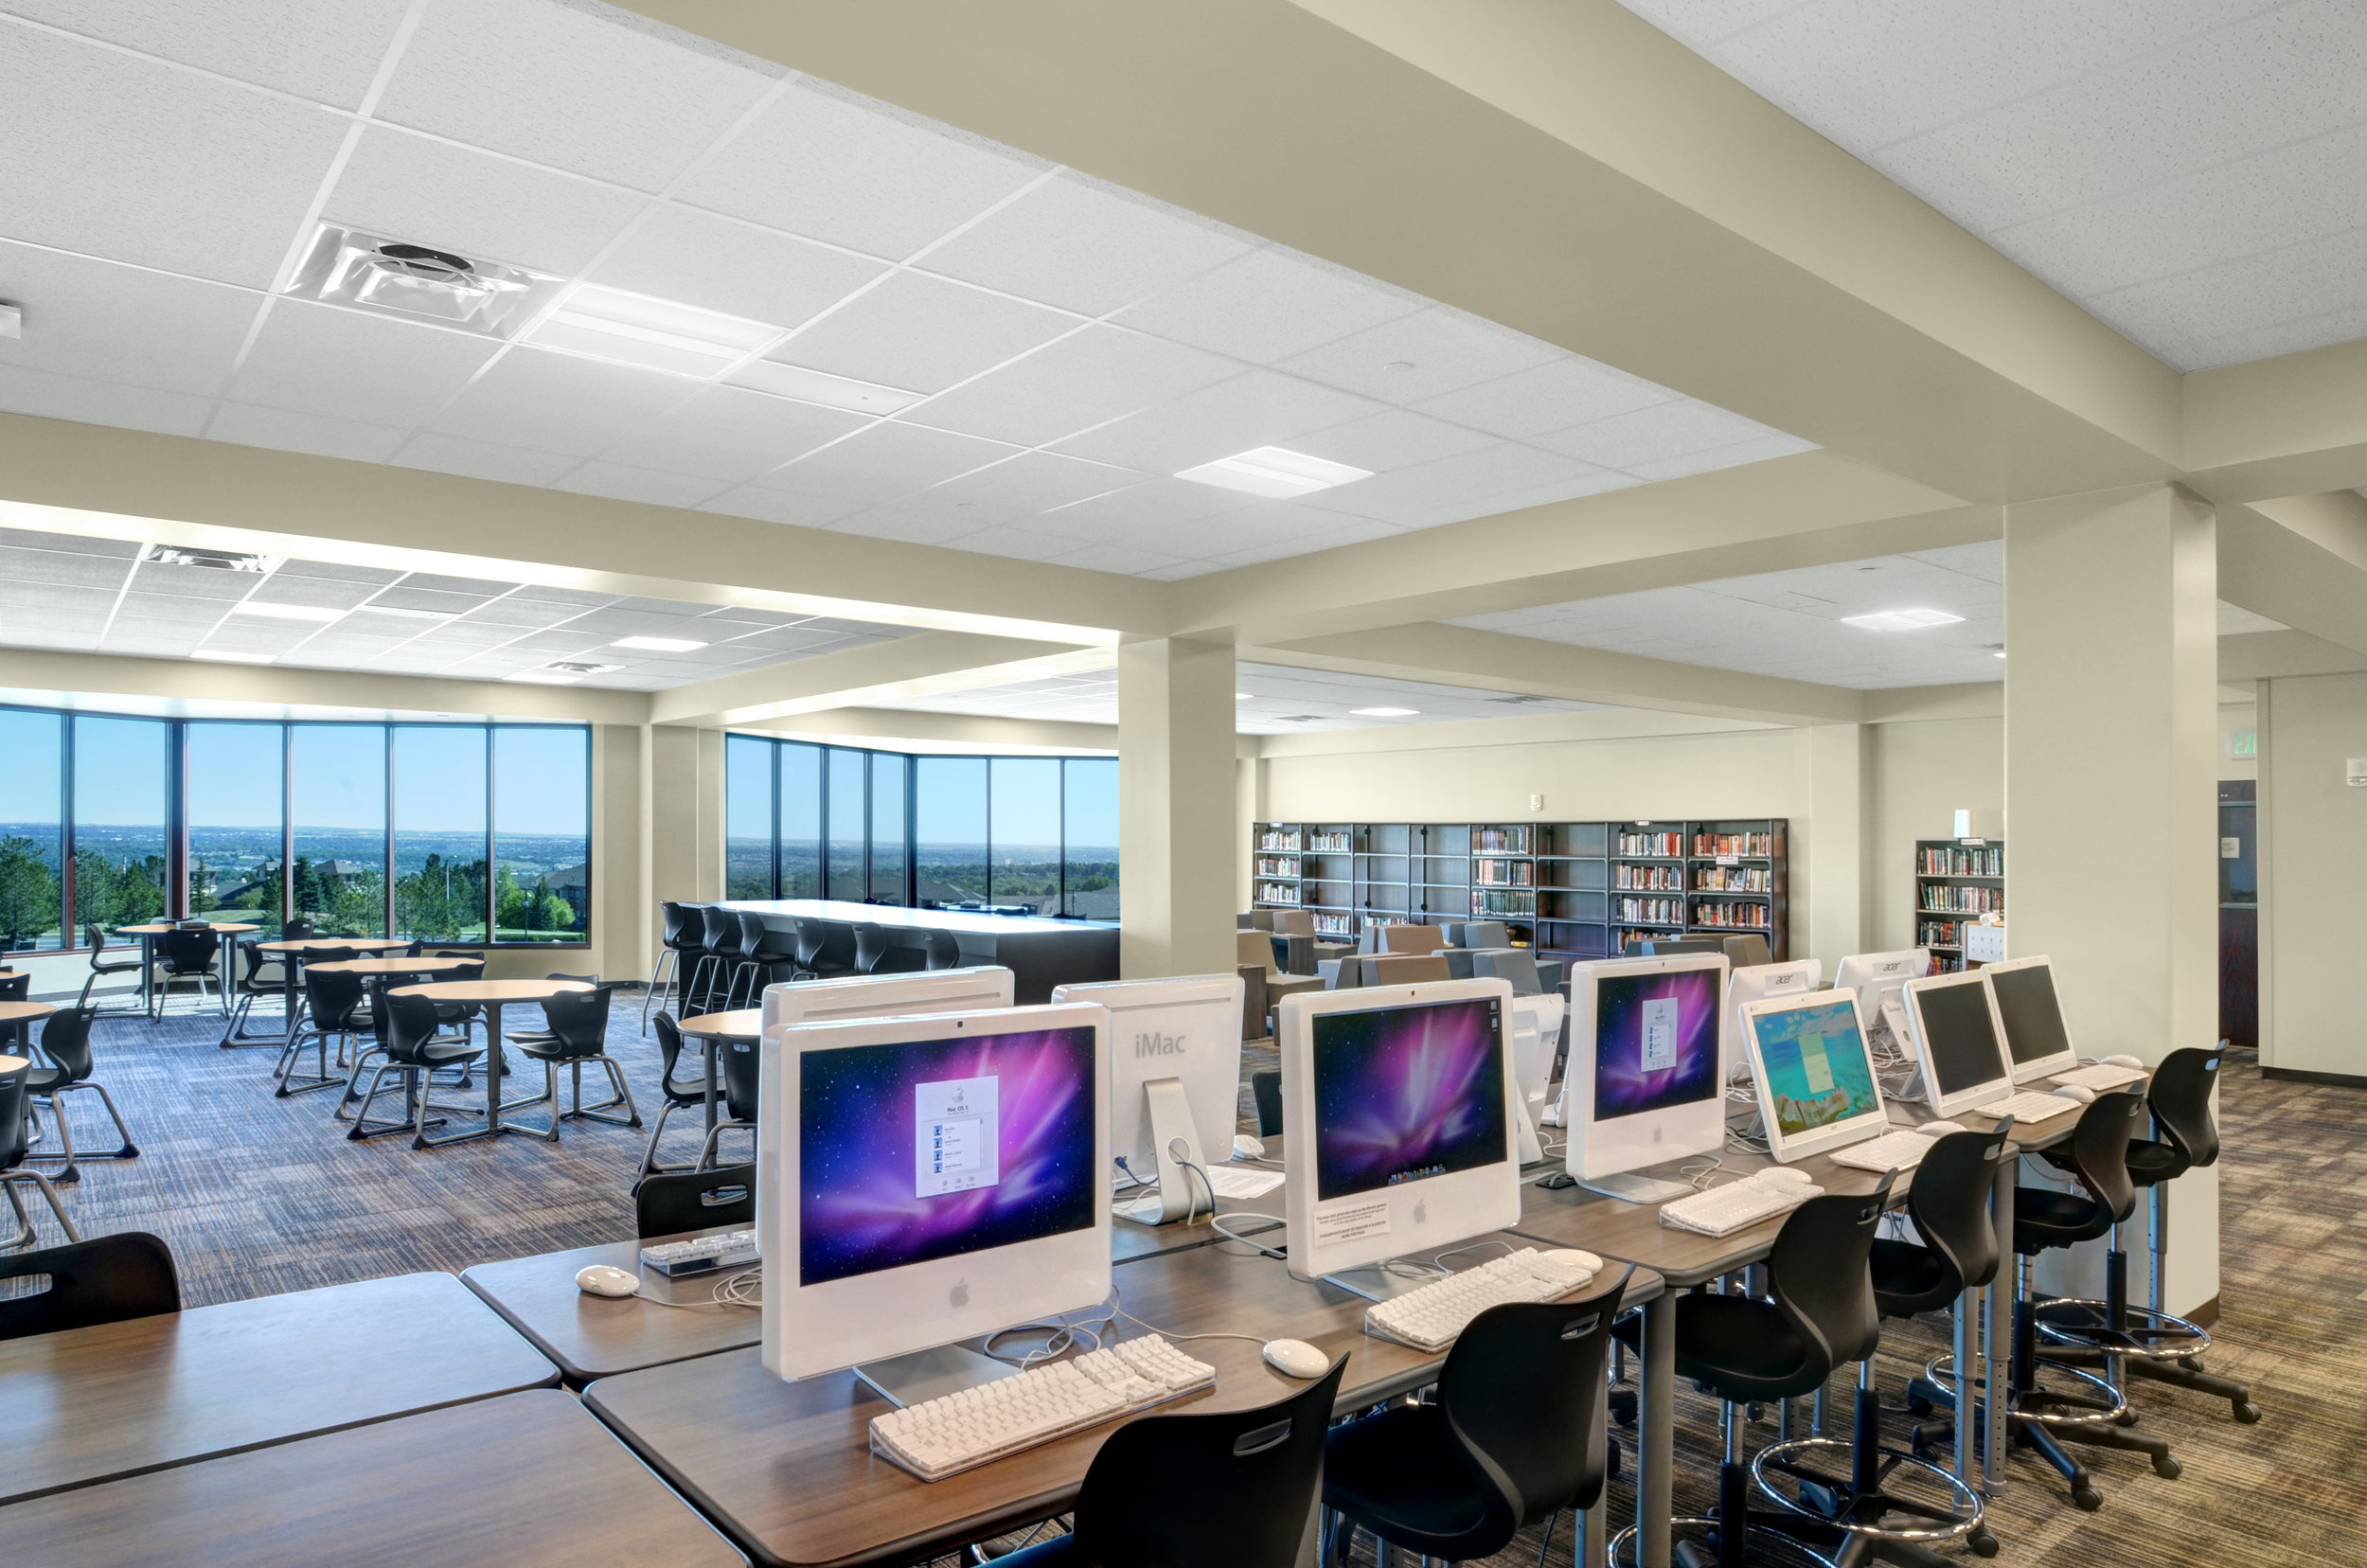 Access to resources, various styles of study furniture and outdoor views make for an ideal library center setting.